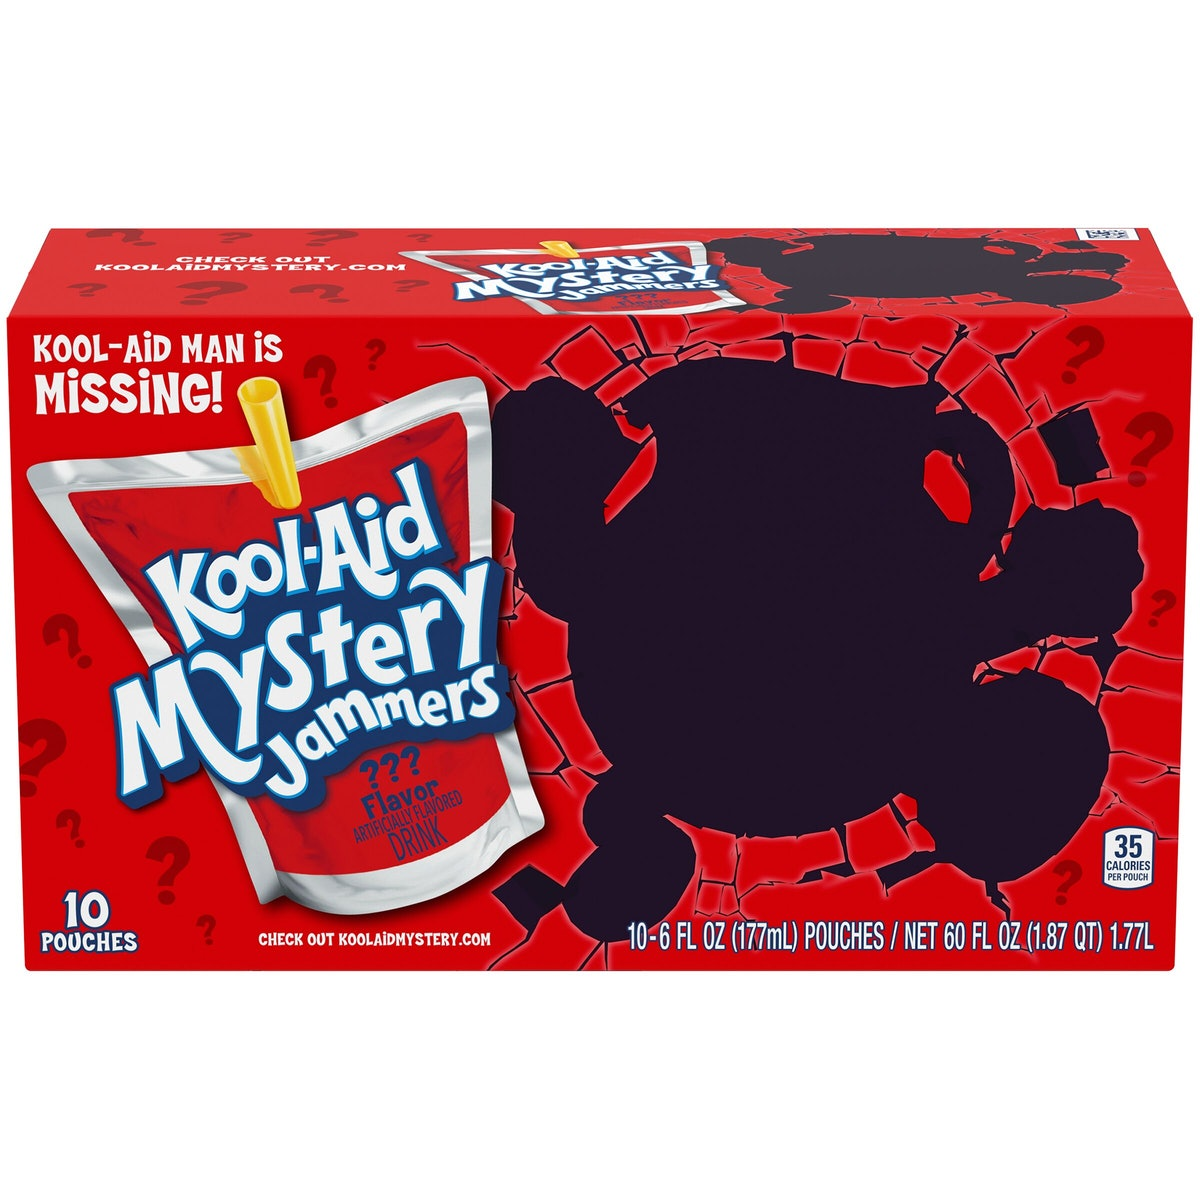 The Kool-Aid Jammers Mystery Flavor Contest is giving away a free vacation to any city in the U.S.